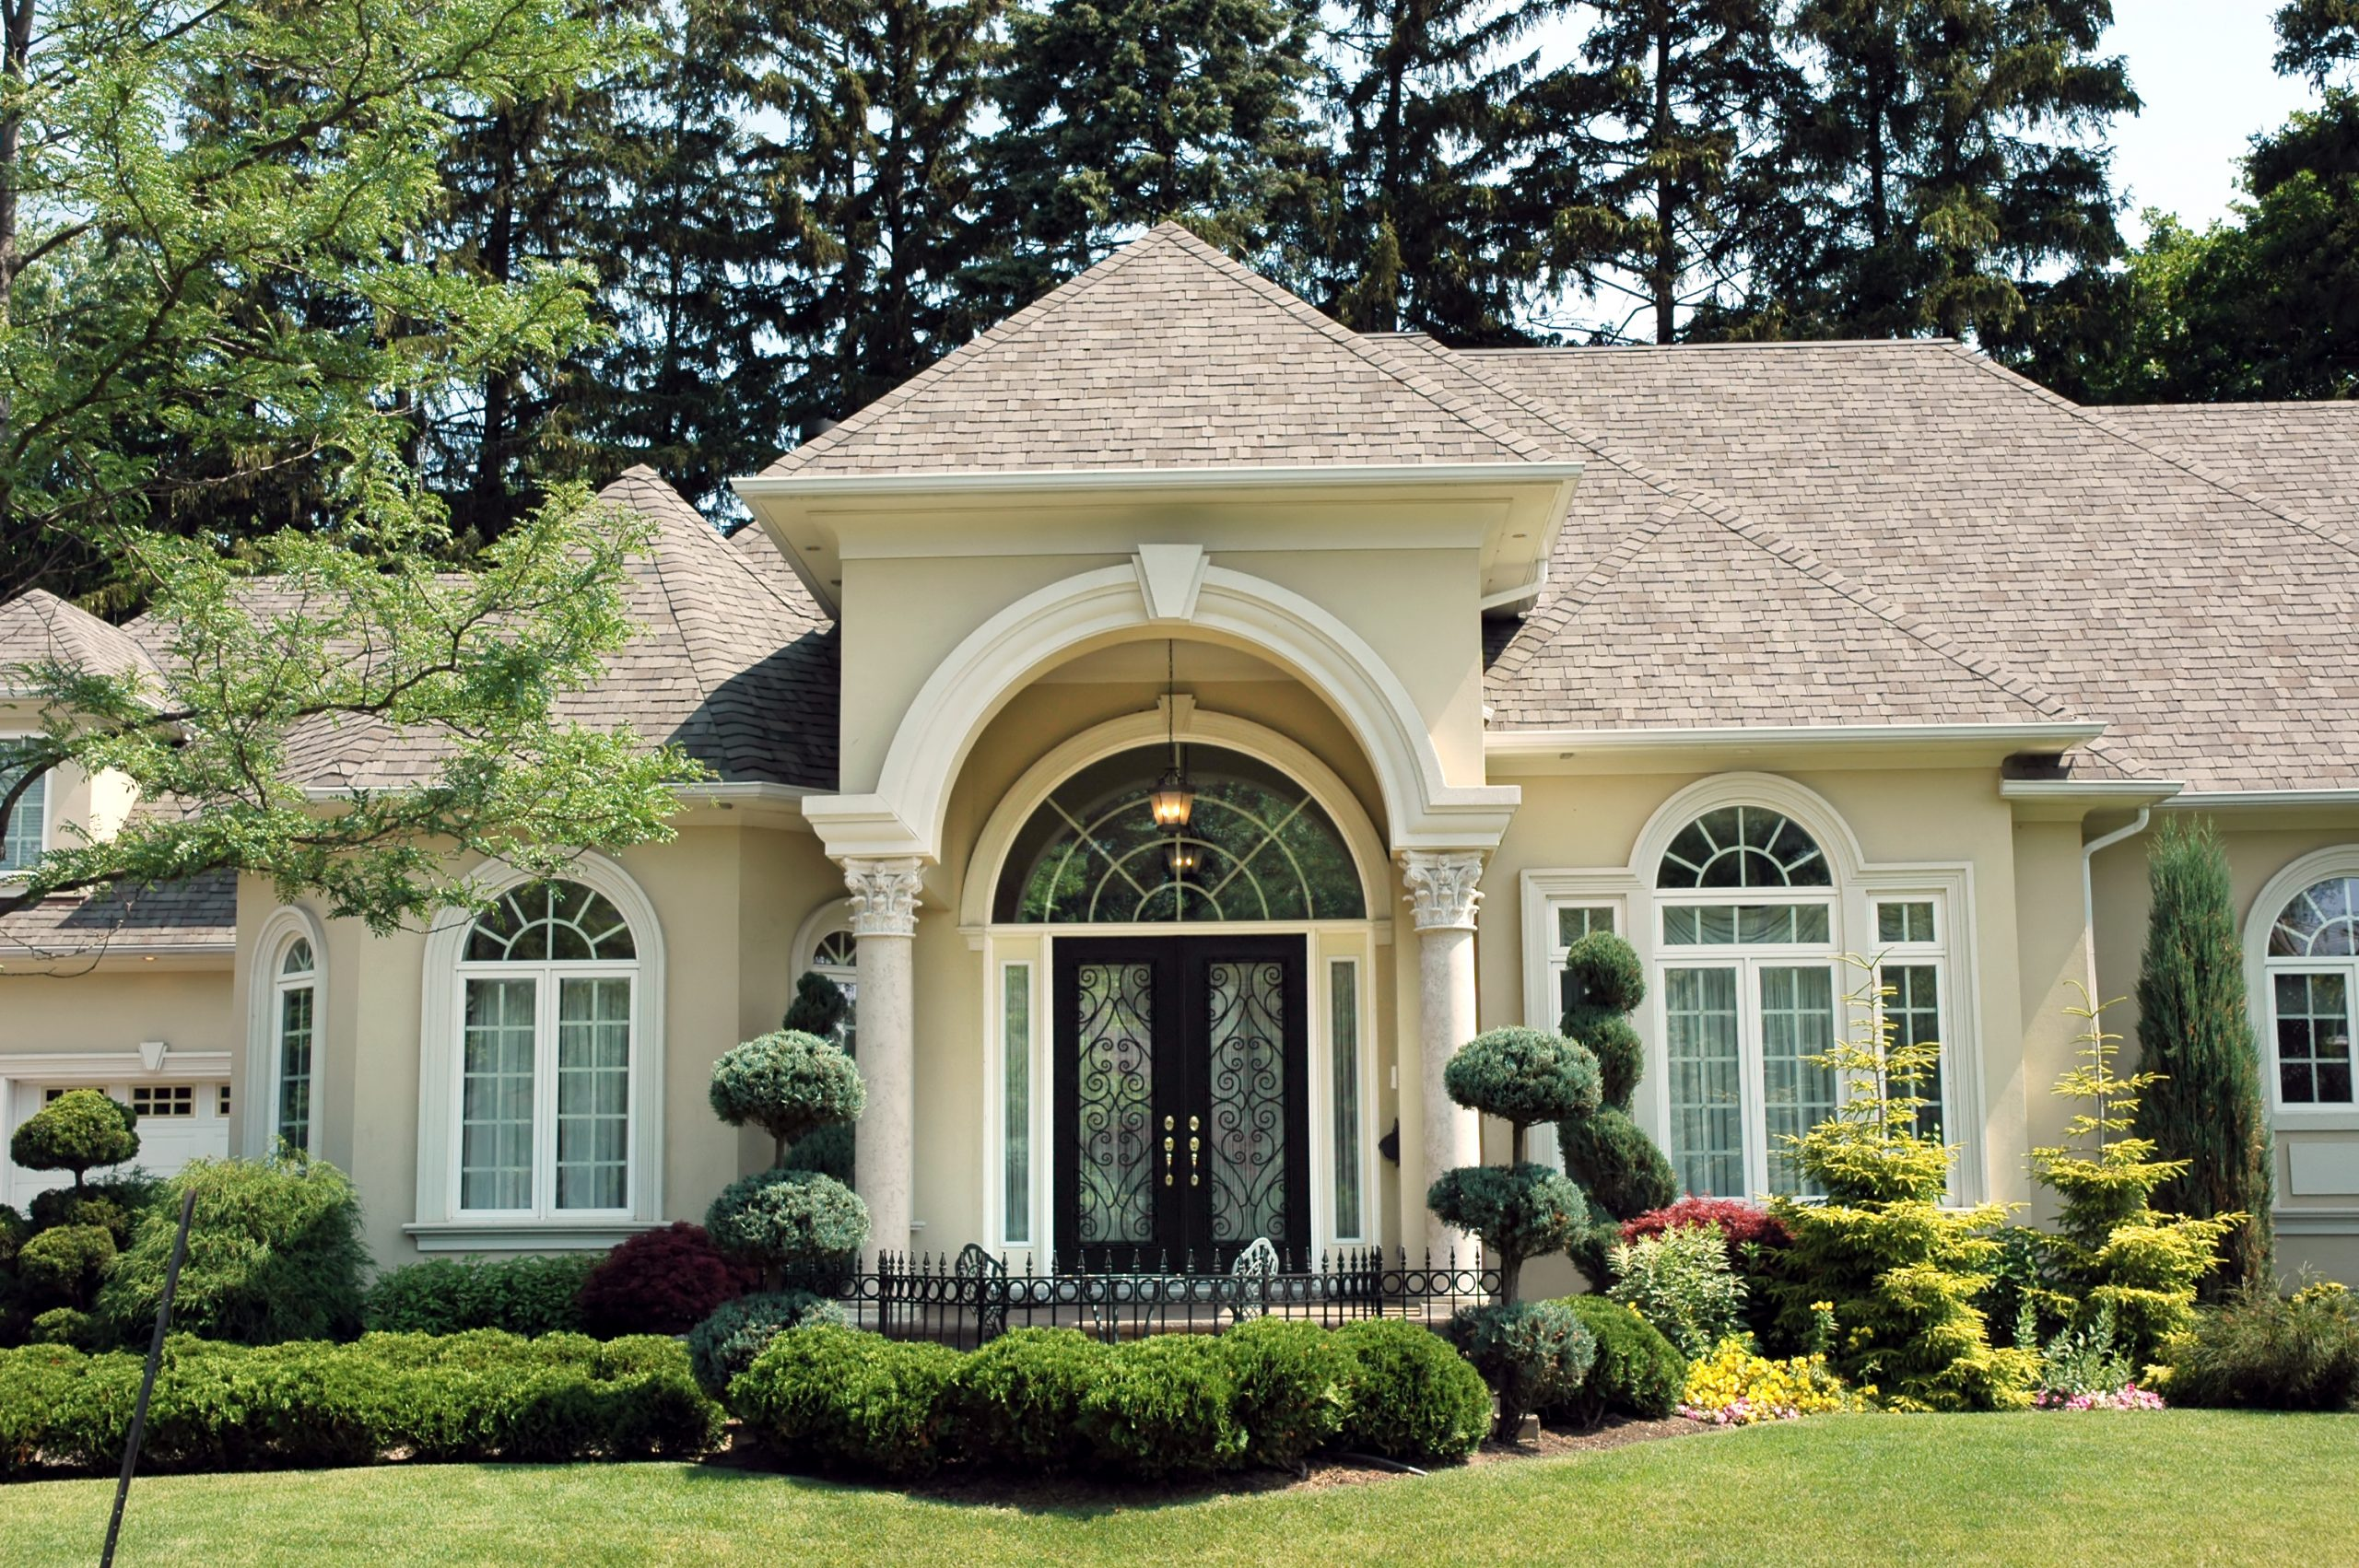 5 Tips for Building Equity in Your Home